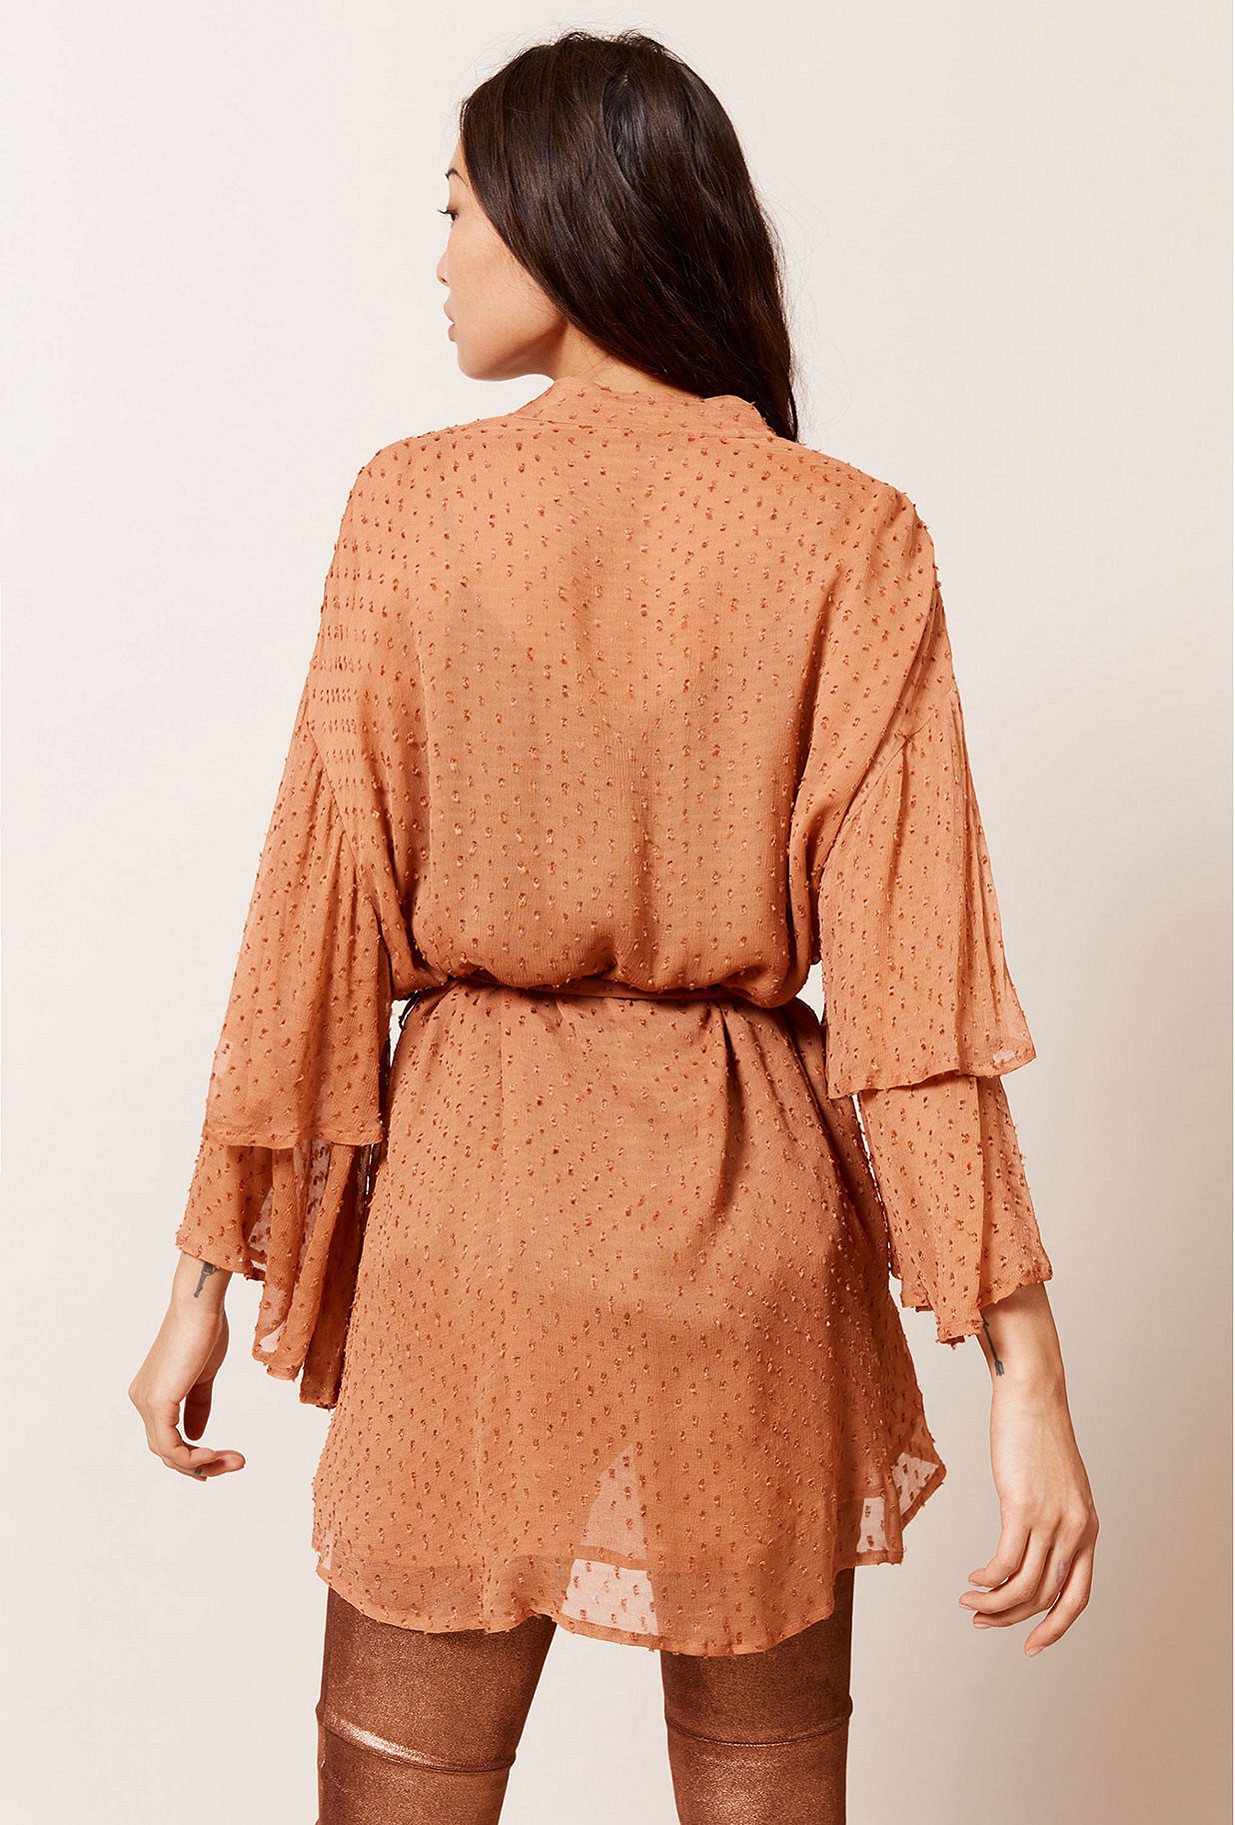 Paris clothes store Kimono Douchka french designer fashion Paris